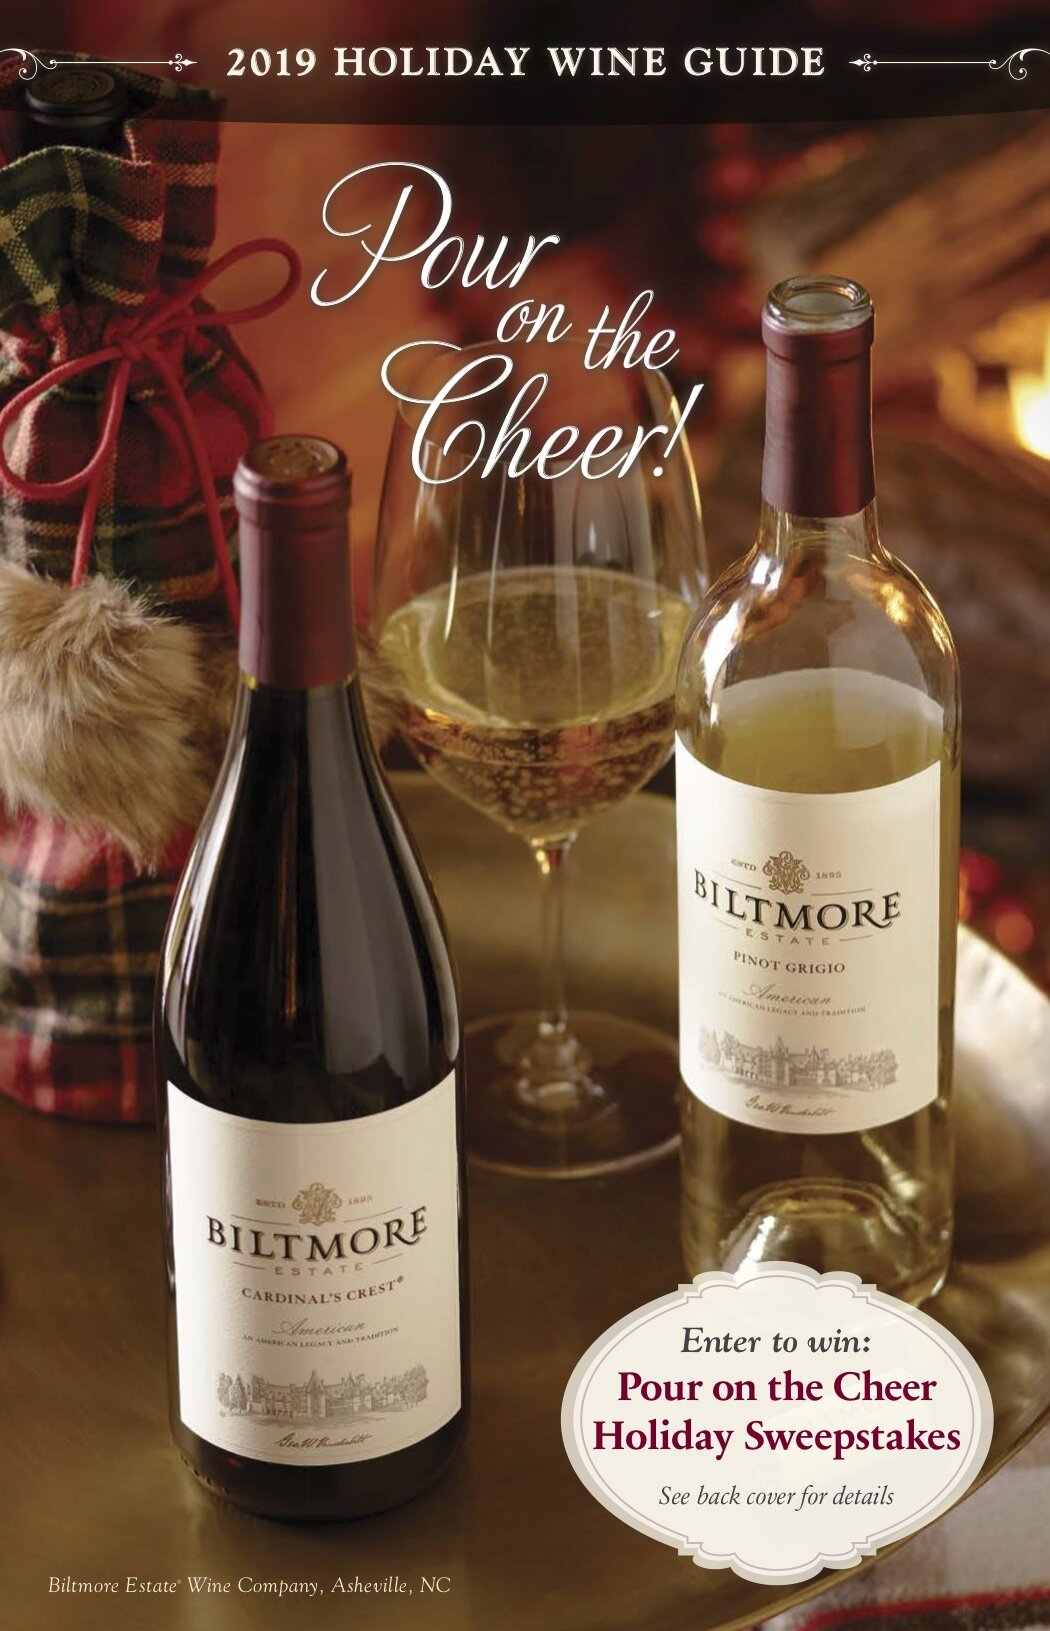 4309_MCJ_BWC_ 2019 Wine Gift Giving Guide Direct Mail_FINAL-2.jpg